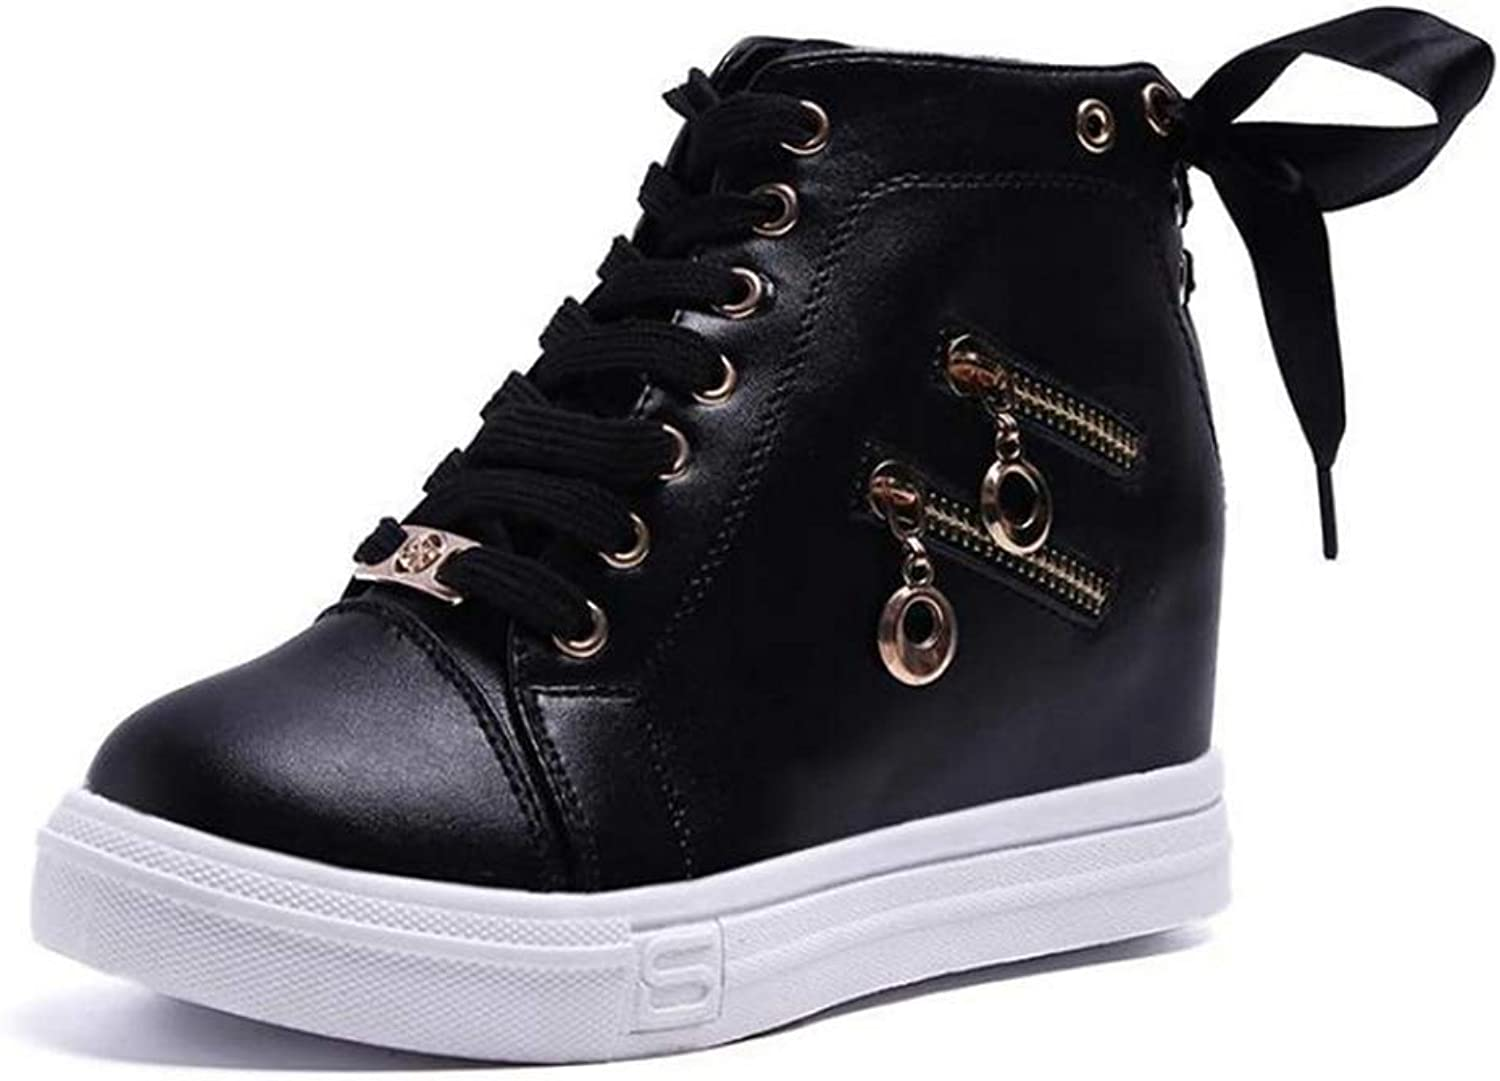 T-JULY Women Wedge Platform Rubber High Heel shoes Fashion Pointed Toe Increasing Zipper Leather Lace Up Sneakers